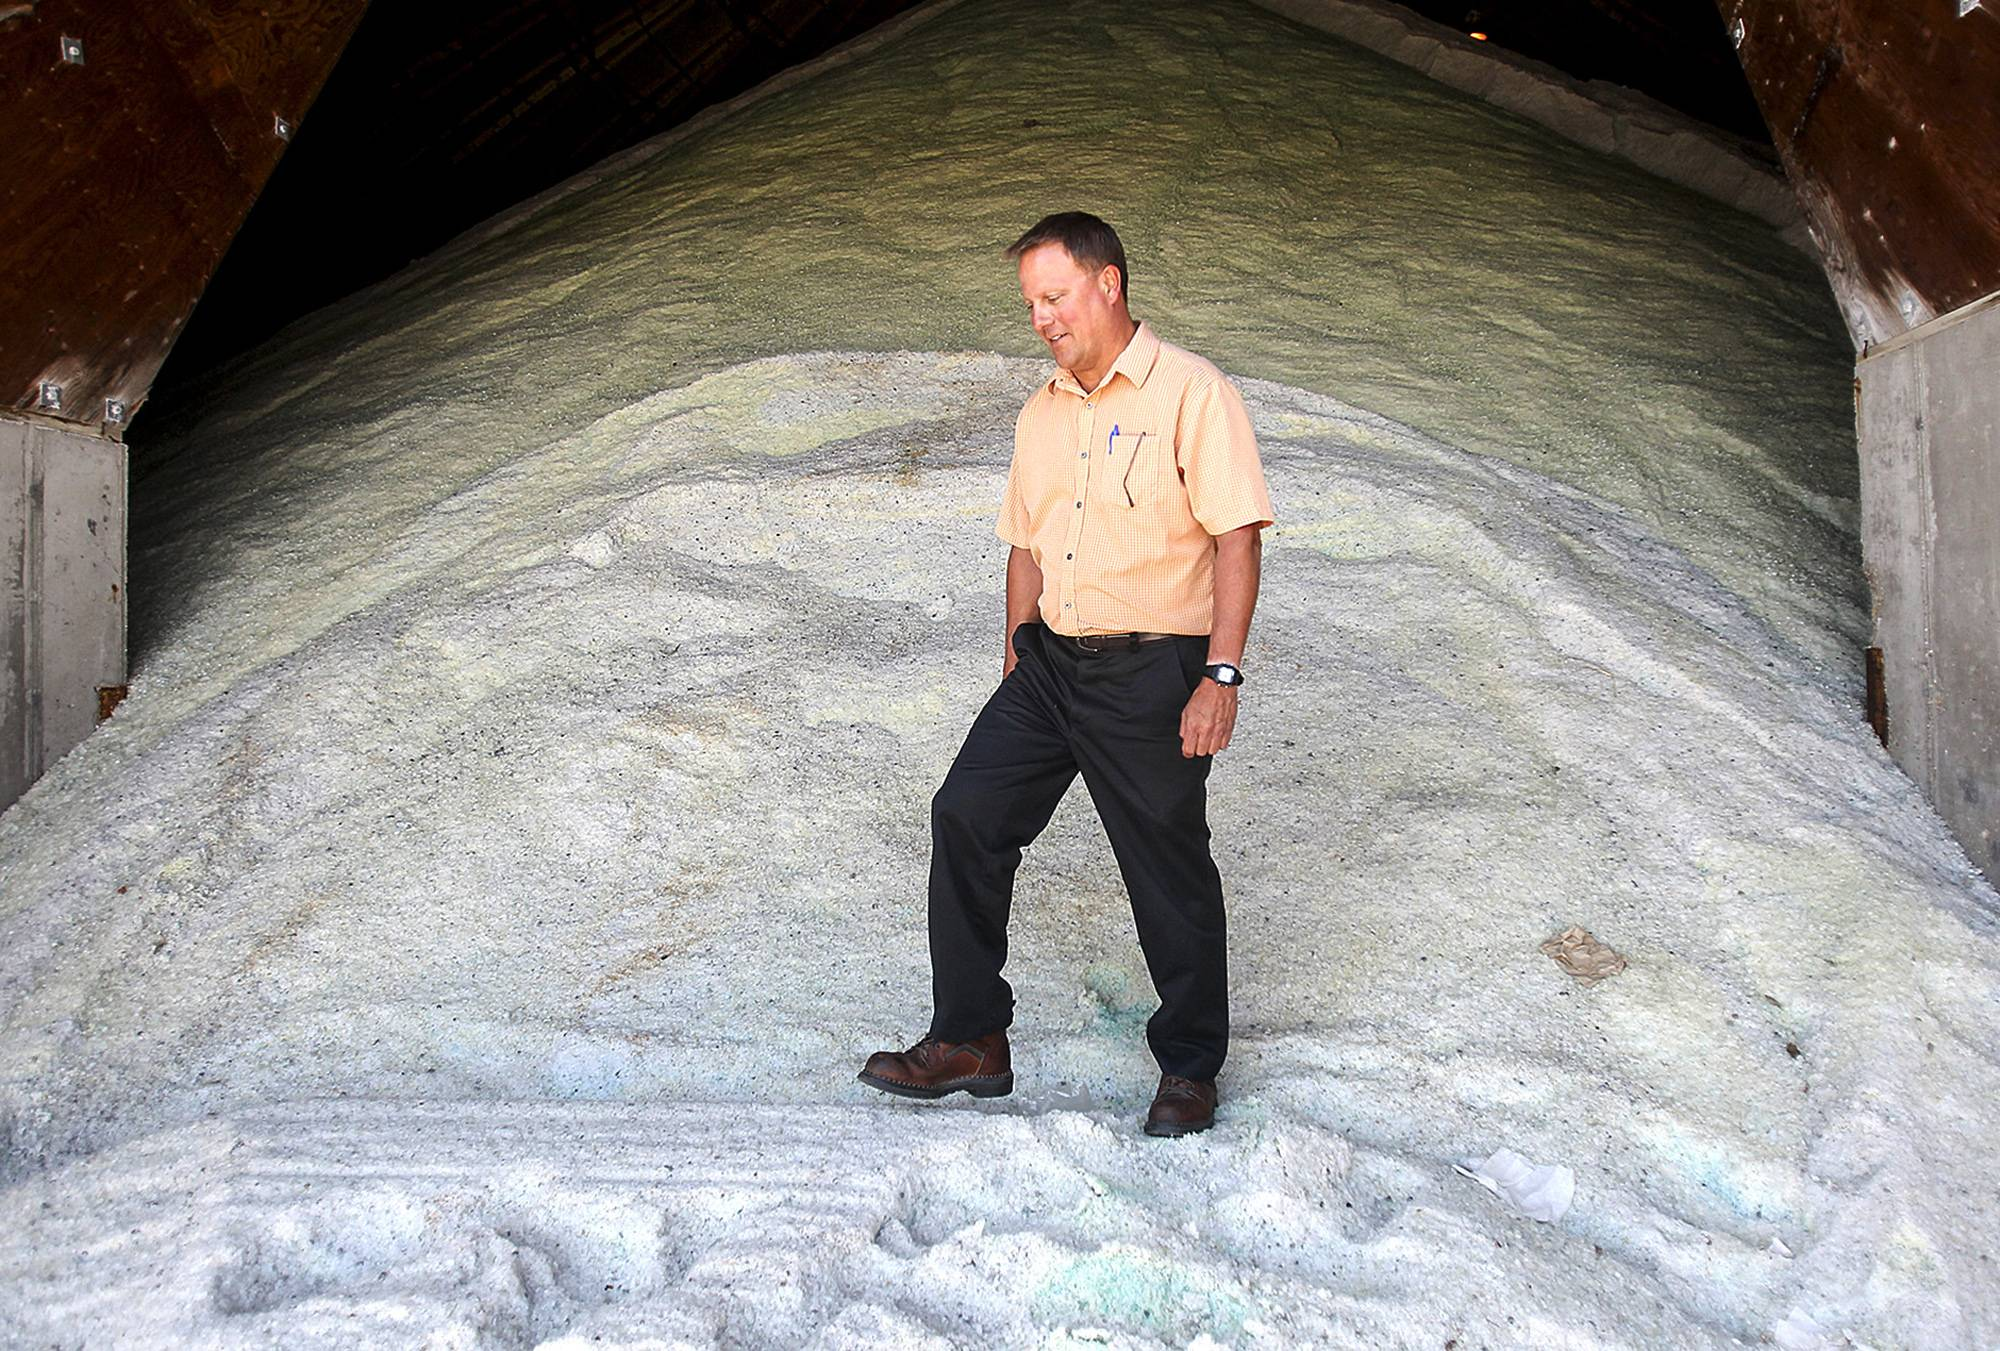 McHenry County Division of Transportation Maintenance Superintendent Edward Markison stands in the salt dome at a facility in Woodstock.